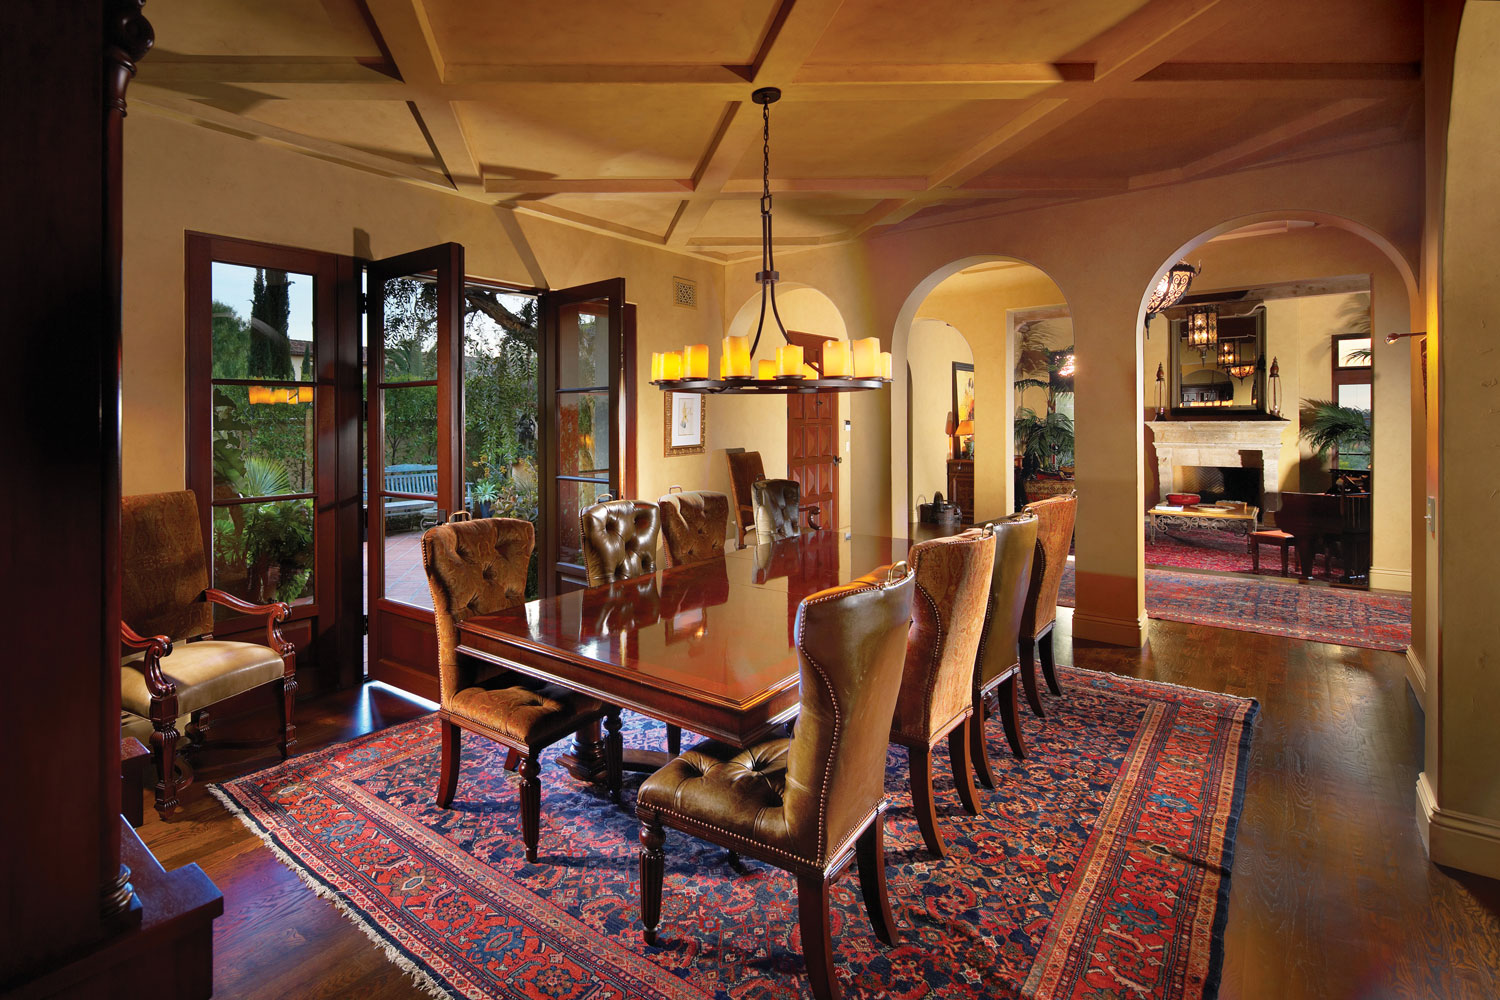 Contemporary-Spanish-Dining-Room-Coffered-Ceiling-French-Door-Corbin-Reeves.jpg